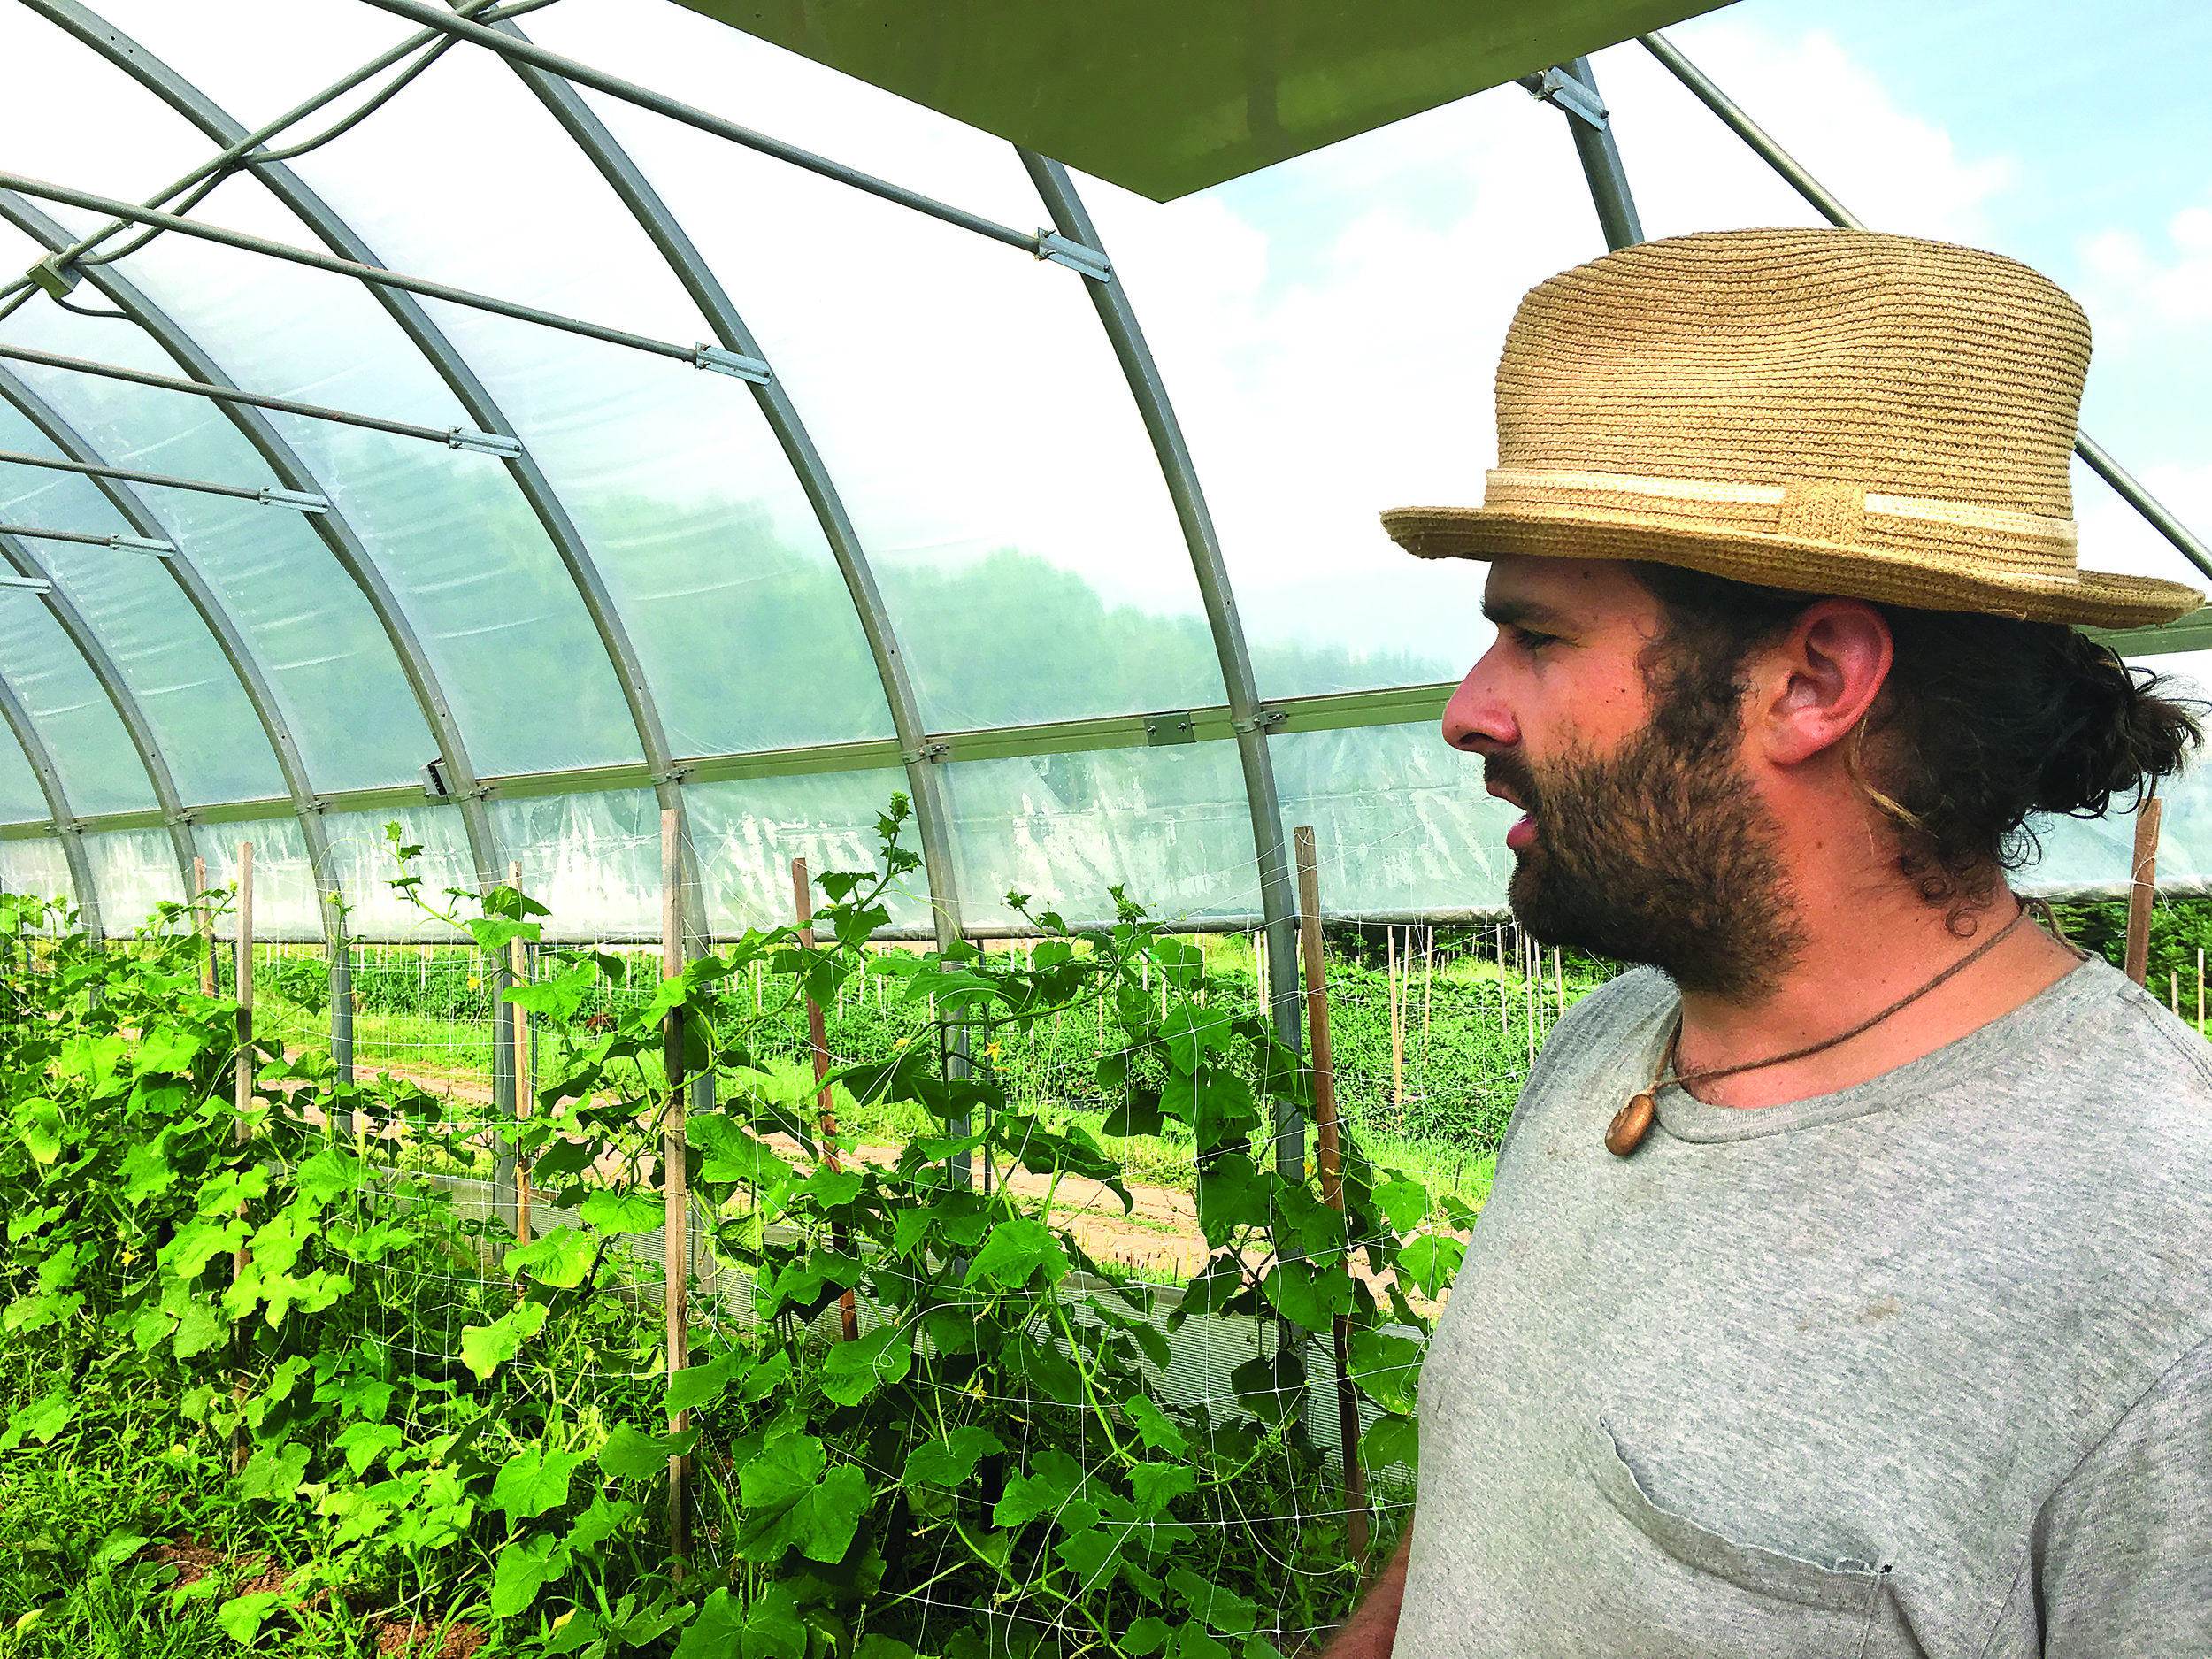 STRIKING A BALANCE  Justin Sutherland looks over vegetables growing in a greenhouse on Somewhere in Time Farm in Parksville. Amy Hines photos